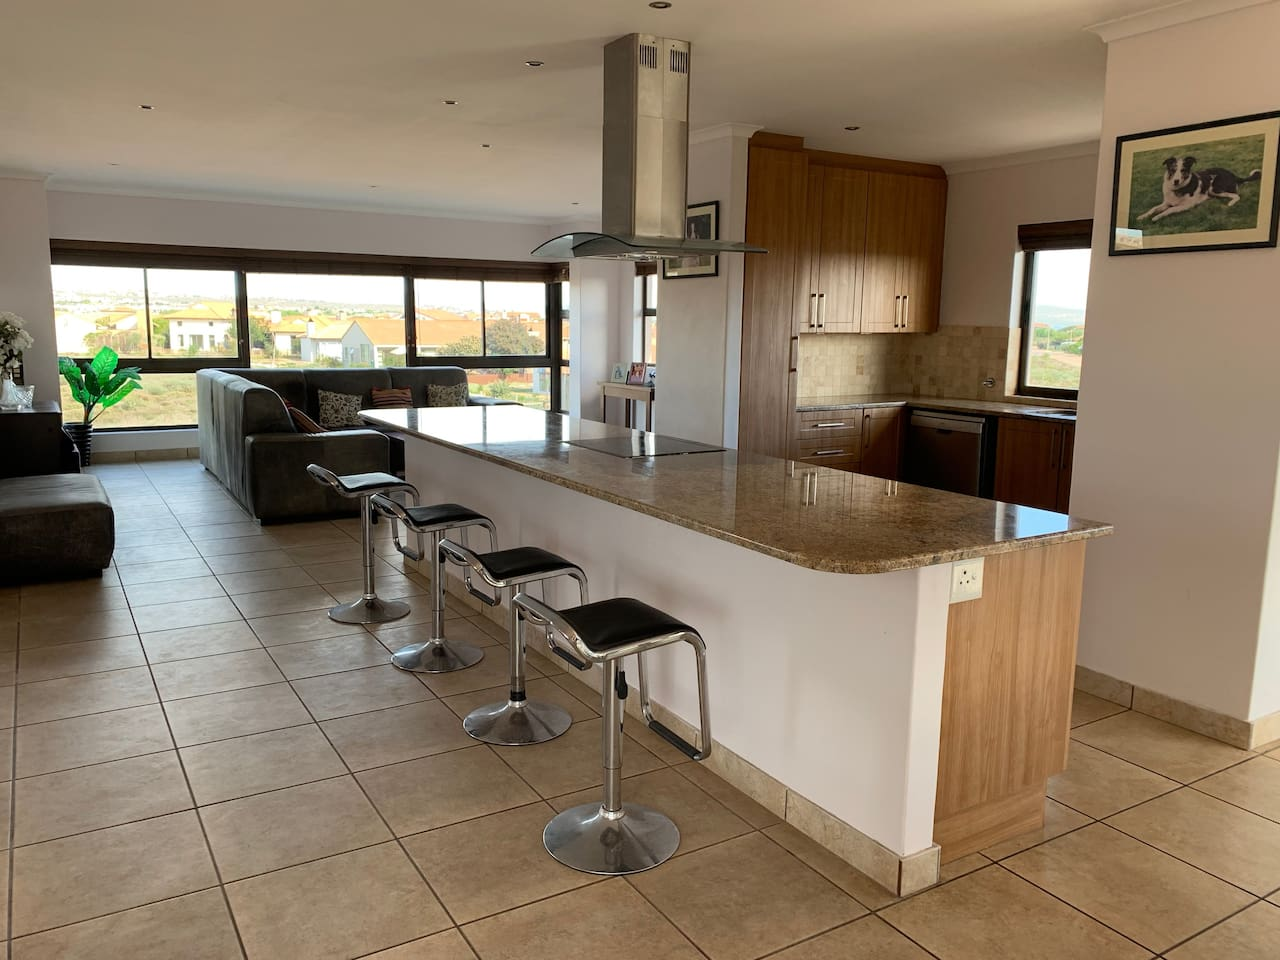 Open plan kitchen and Living area with lovely views